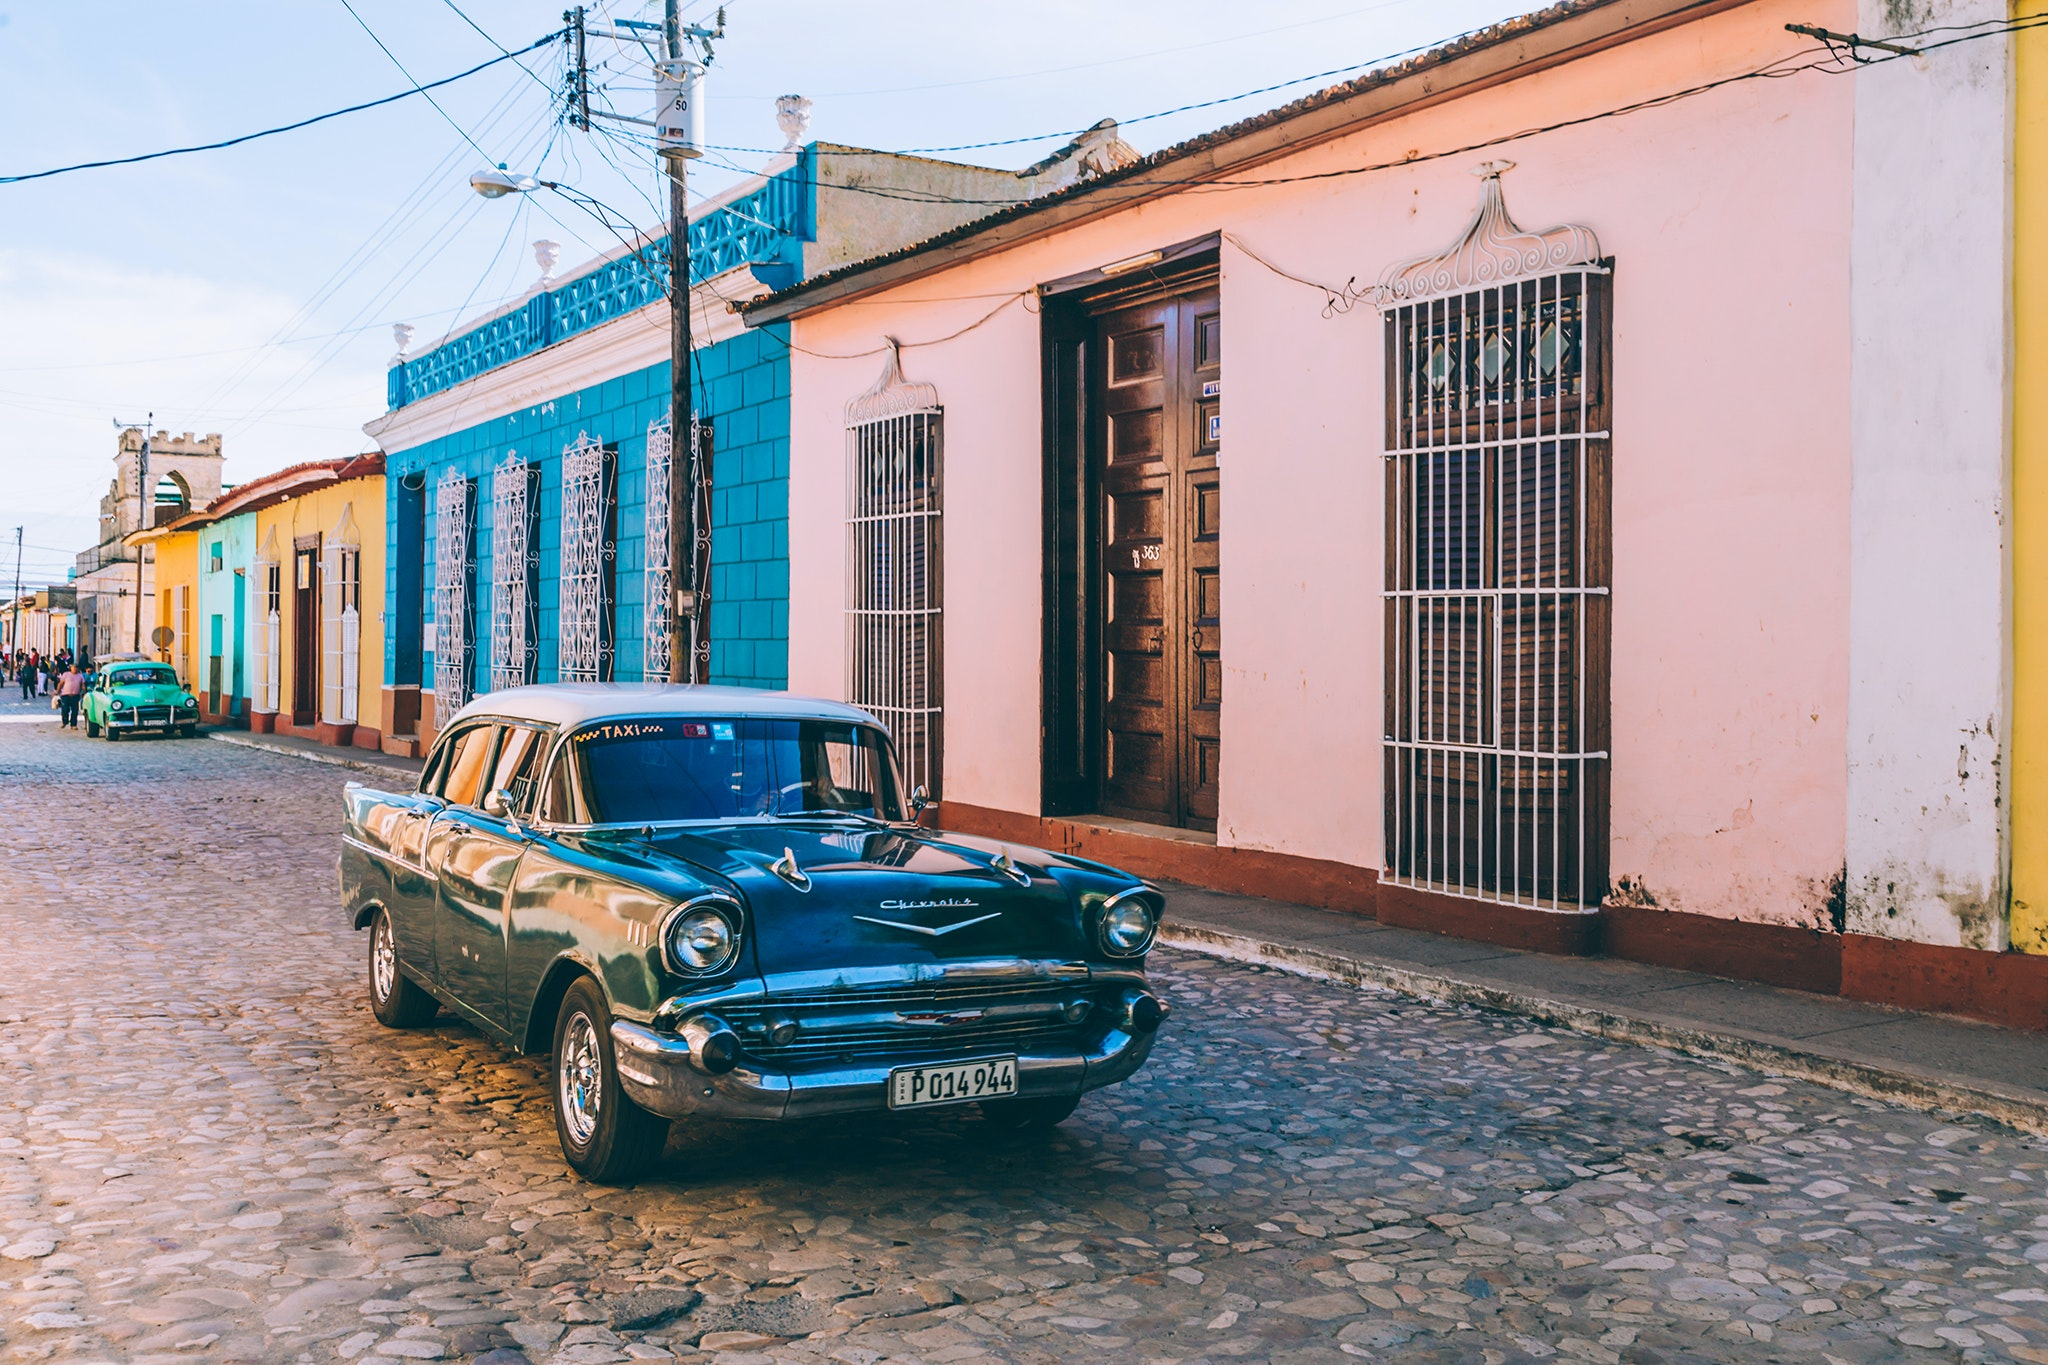 Havana turns 500 years old in 2019, and visiting is a step back in time, complete with ubiquitous 1950s classic cars.